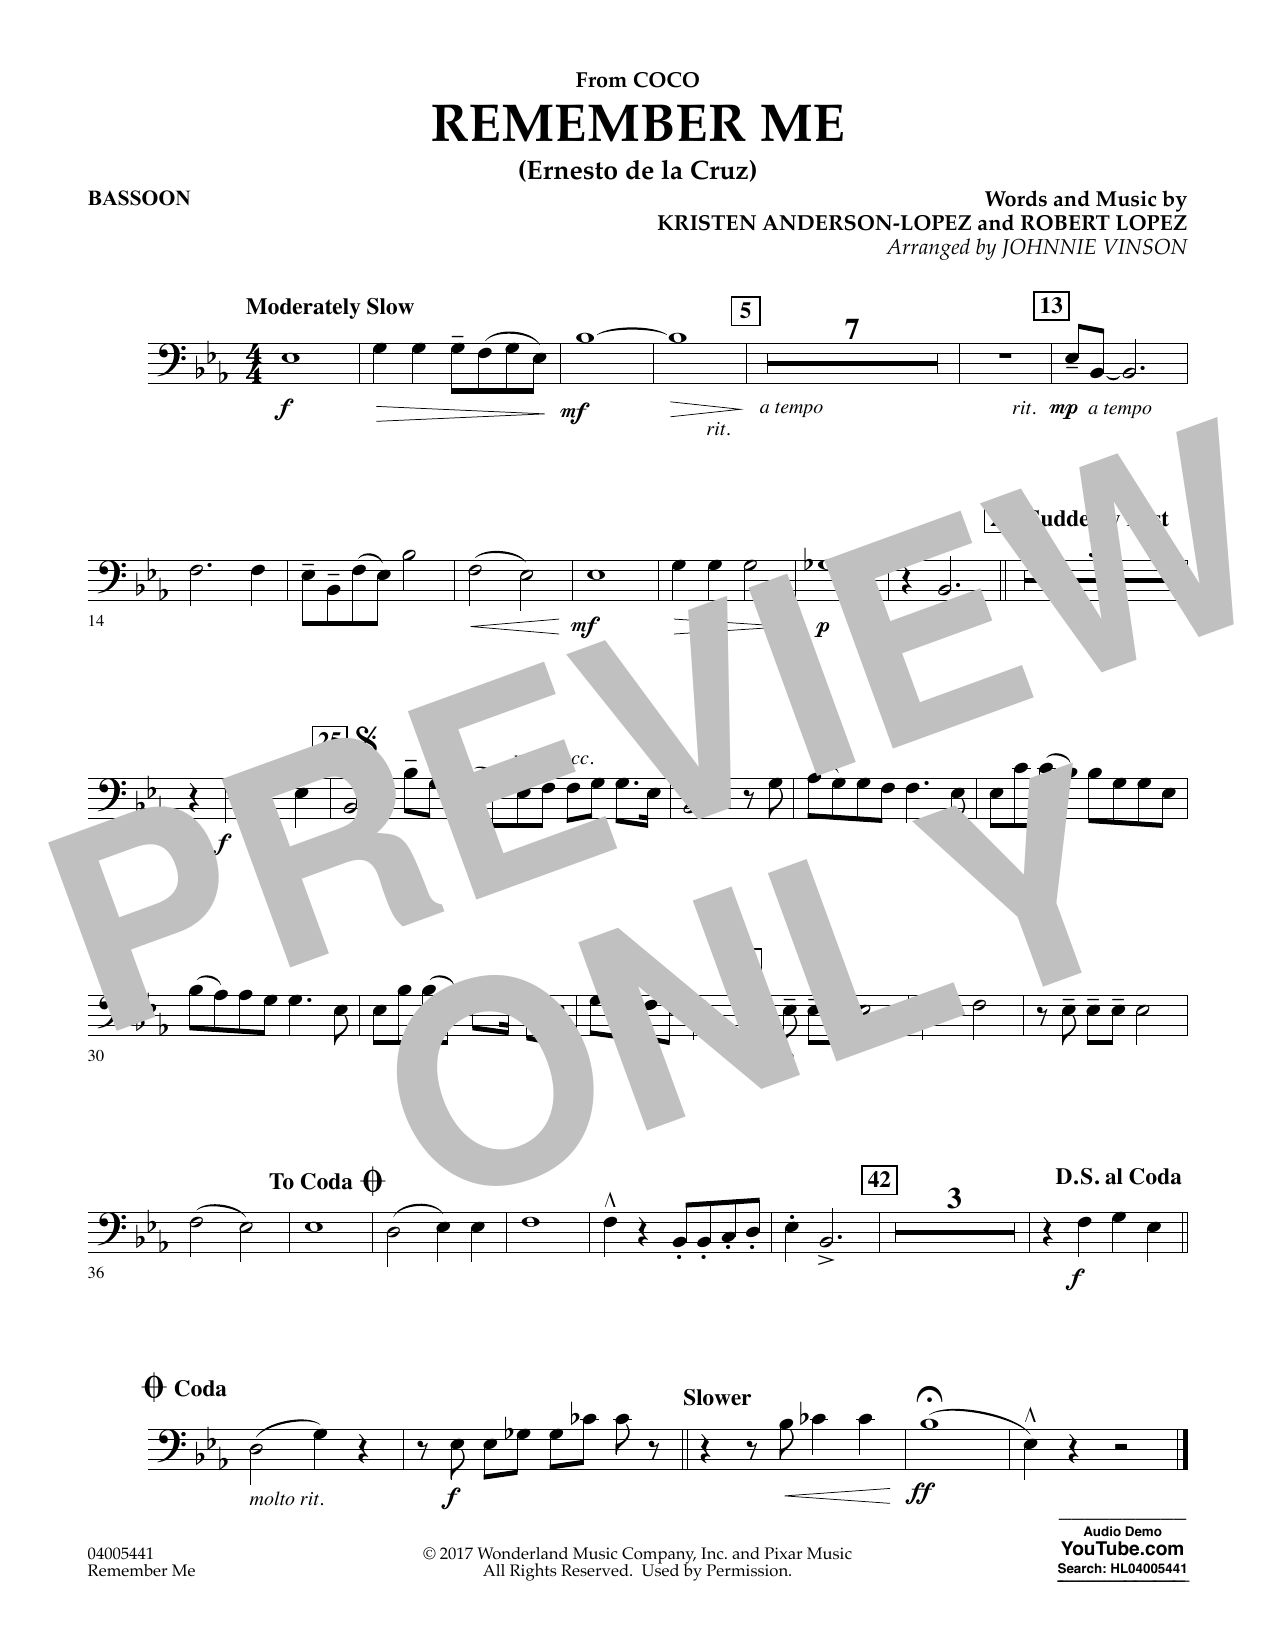 Kristen Anderson-Lopez & Robert Lopez Remember Me (from Coco) (arr. Johnnie Vinson) - Bassoon sheet music notes and chords. Download Printable PDF.